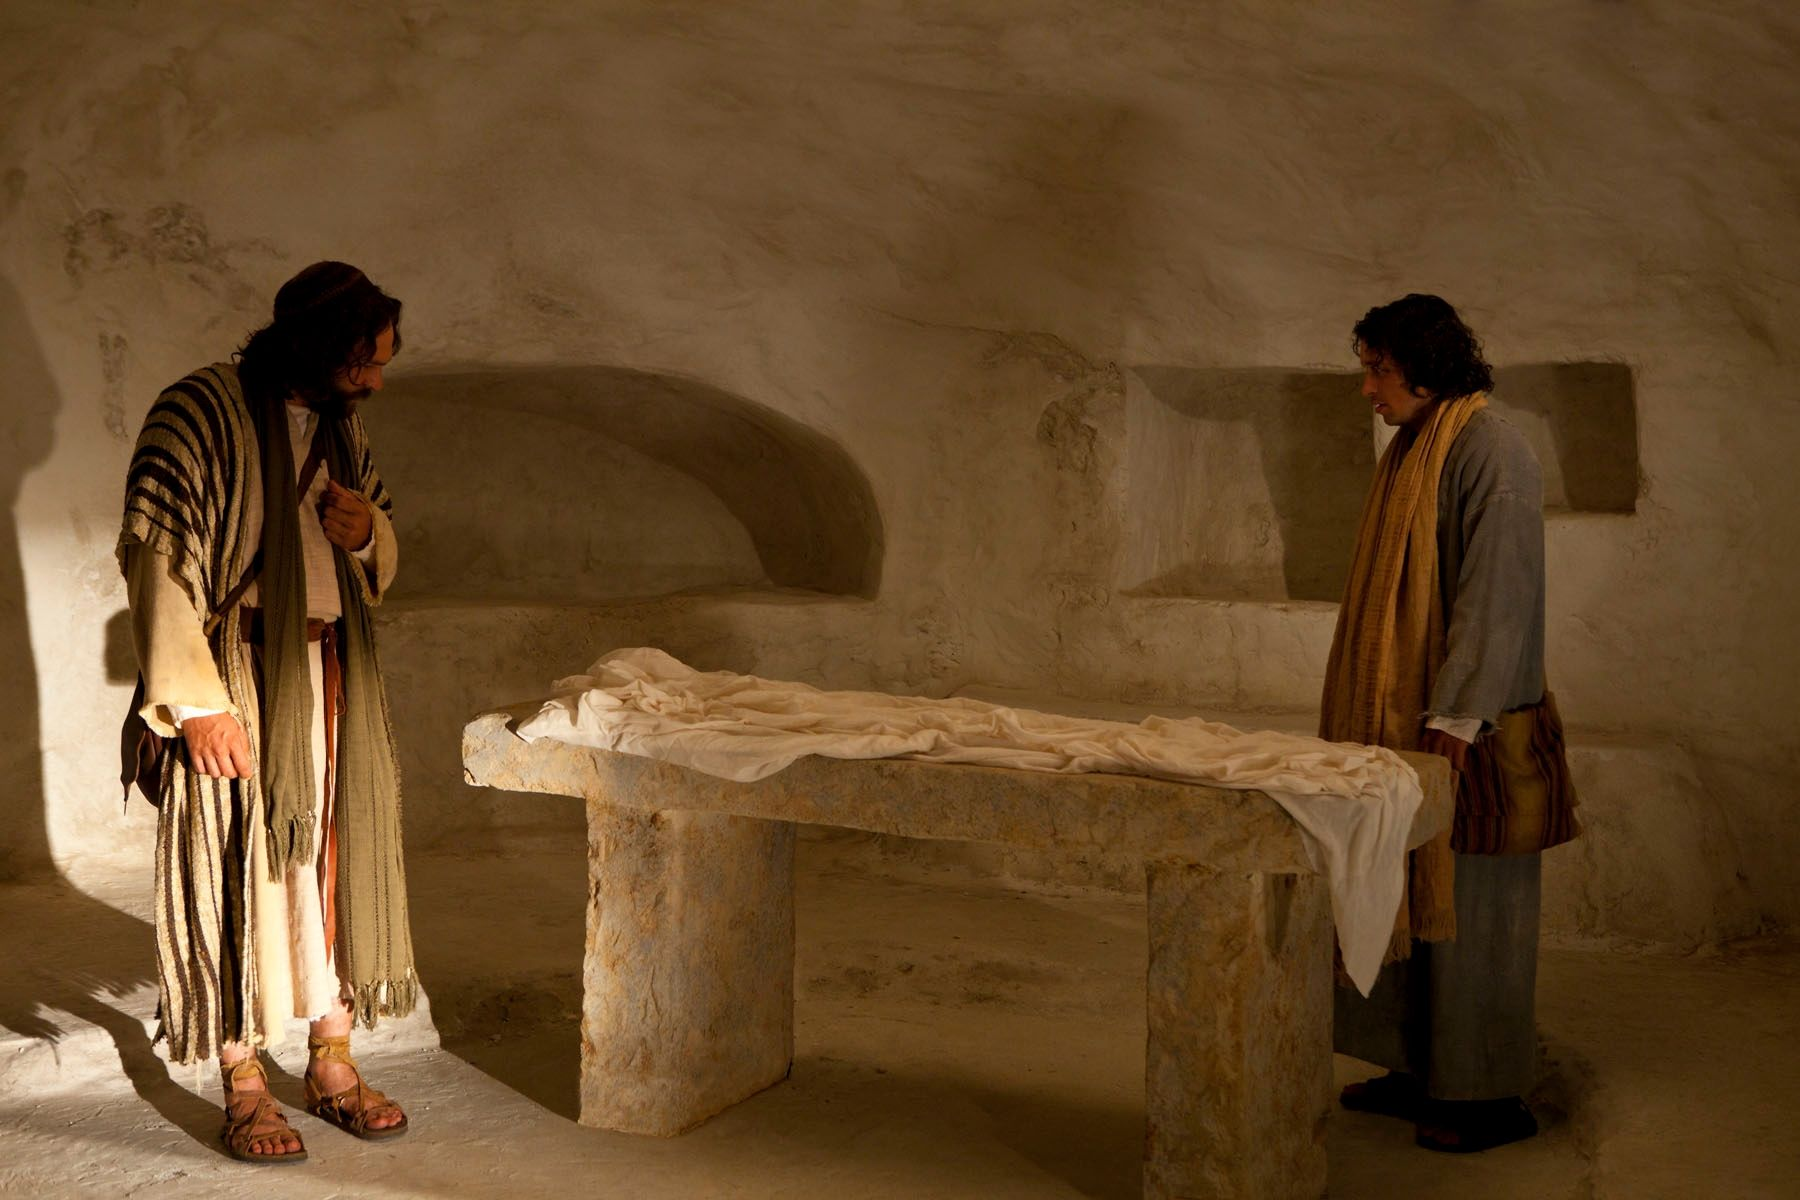 Peter and John enter Christ's tomb to find that He is gone.